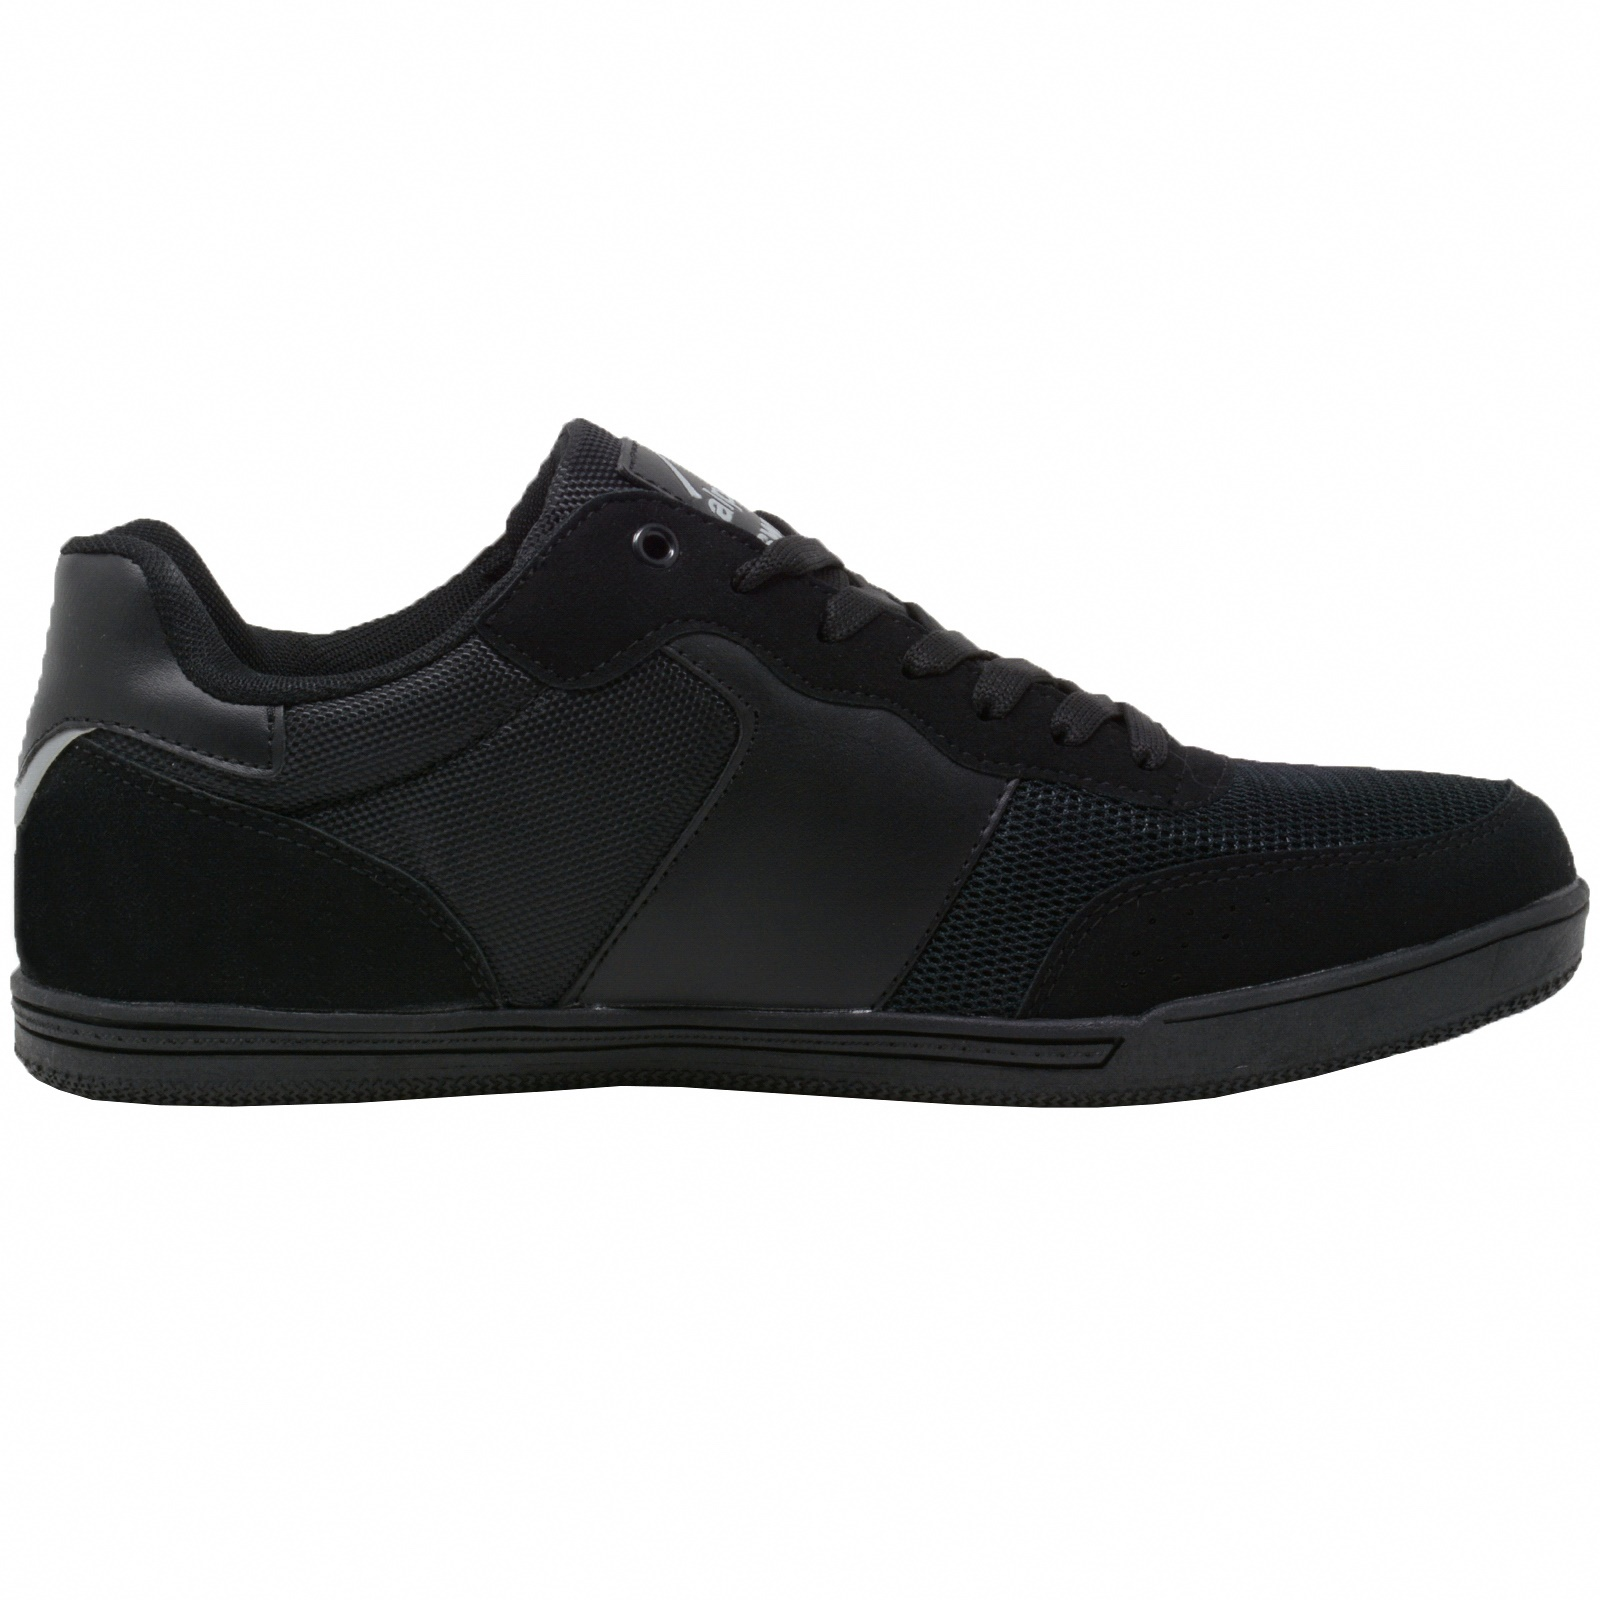 Alpine-Swiss-Liam-Mens-Fashion-Sneakers-Suede-Trim-Low-Top-Lace-Up-Tennis-Shoes thumbnail 16